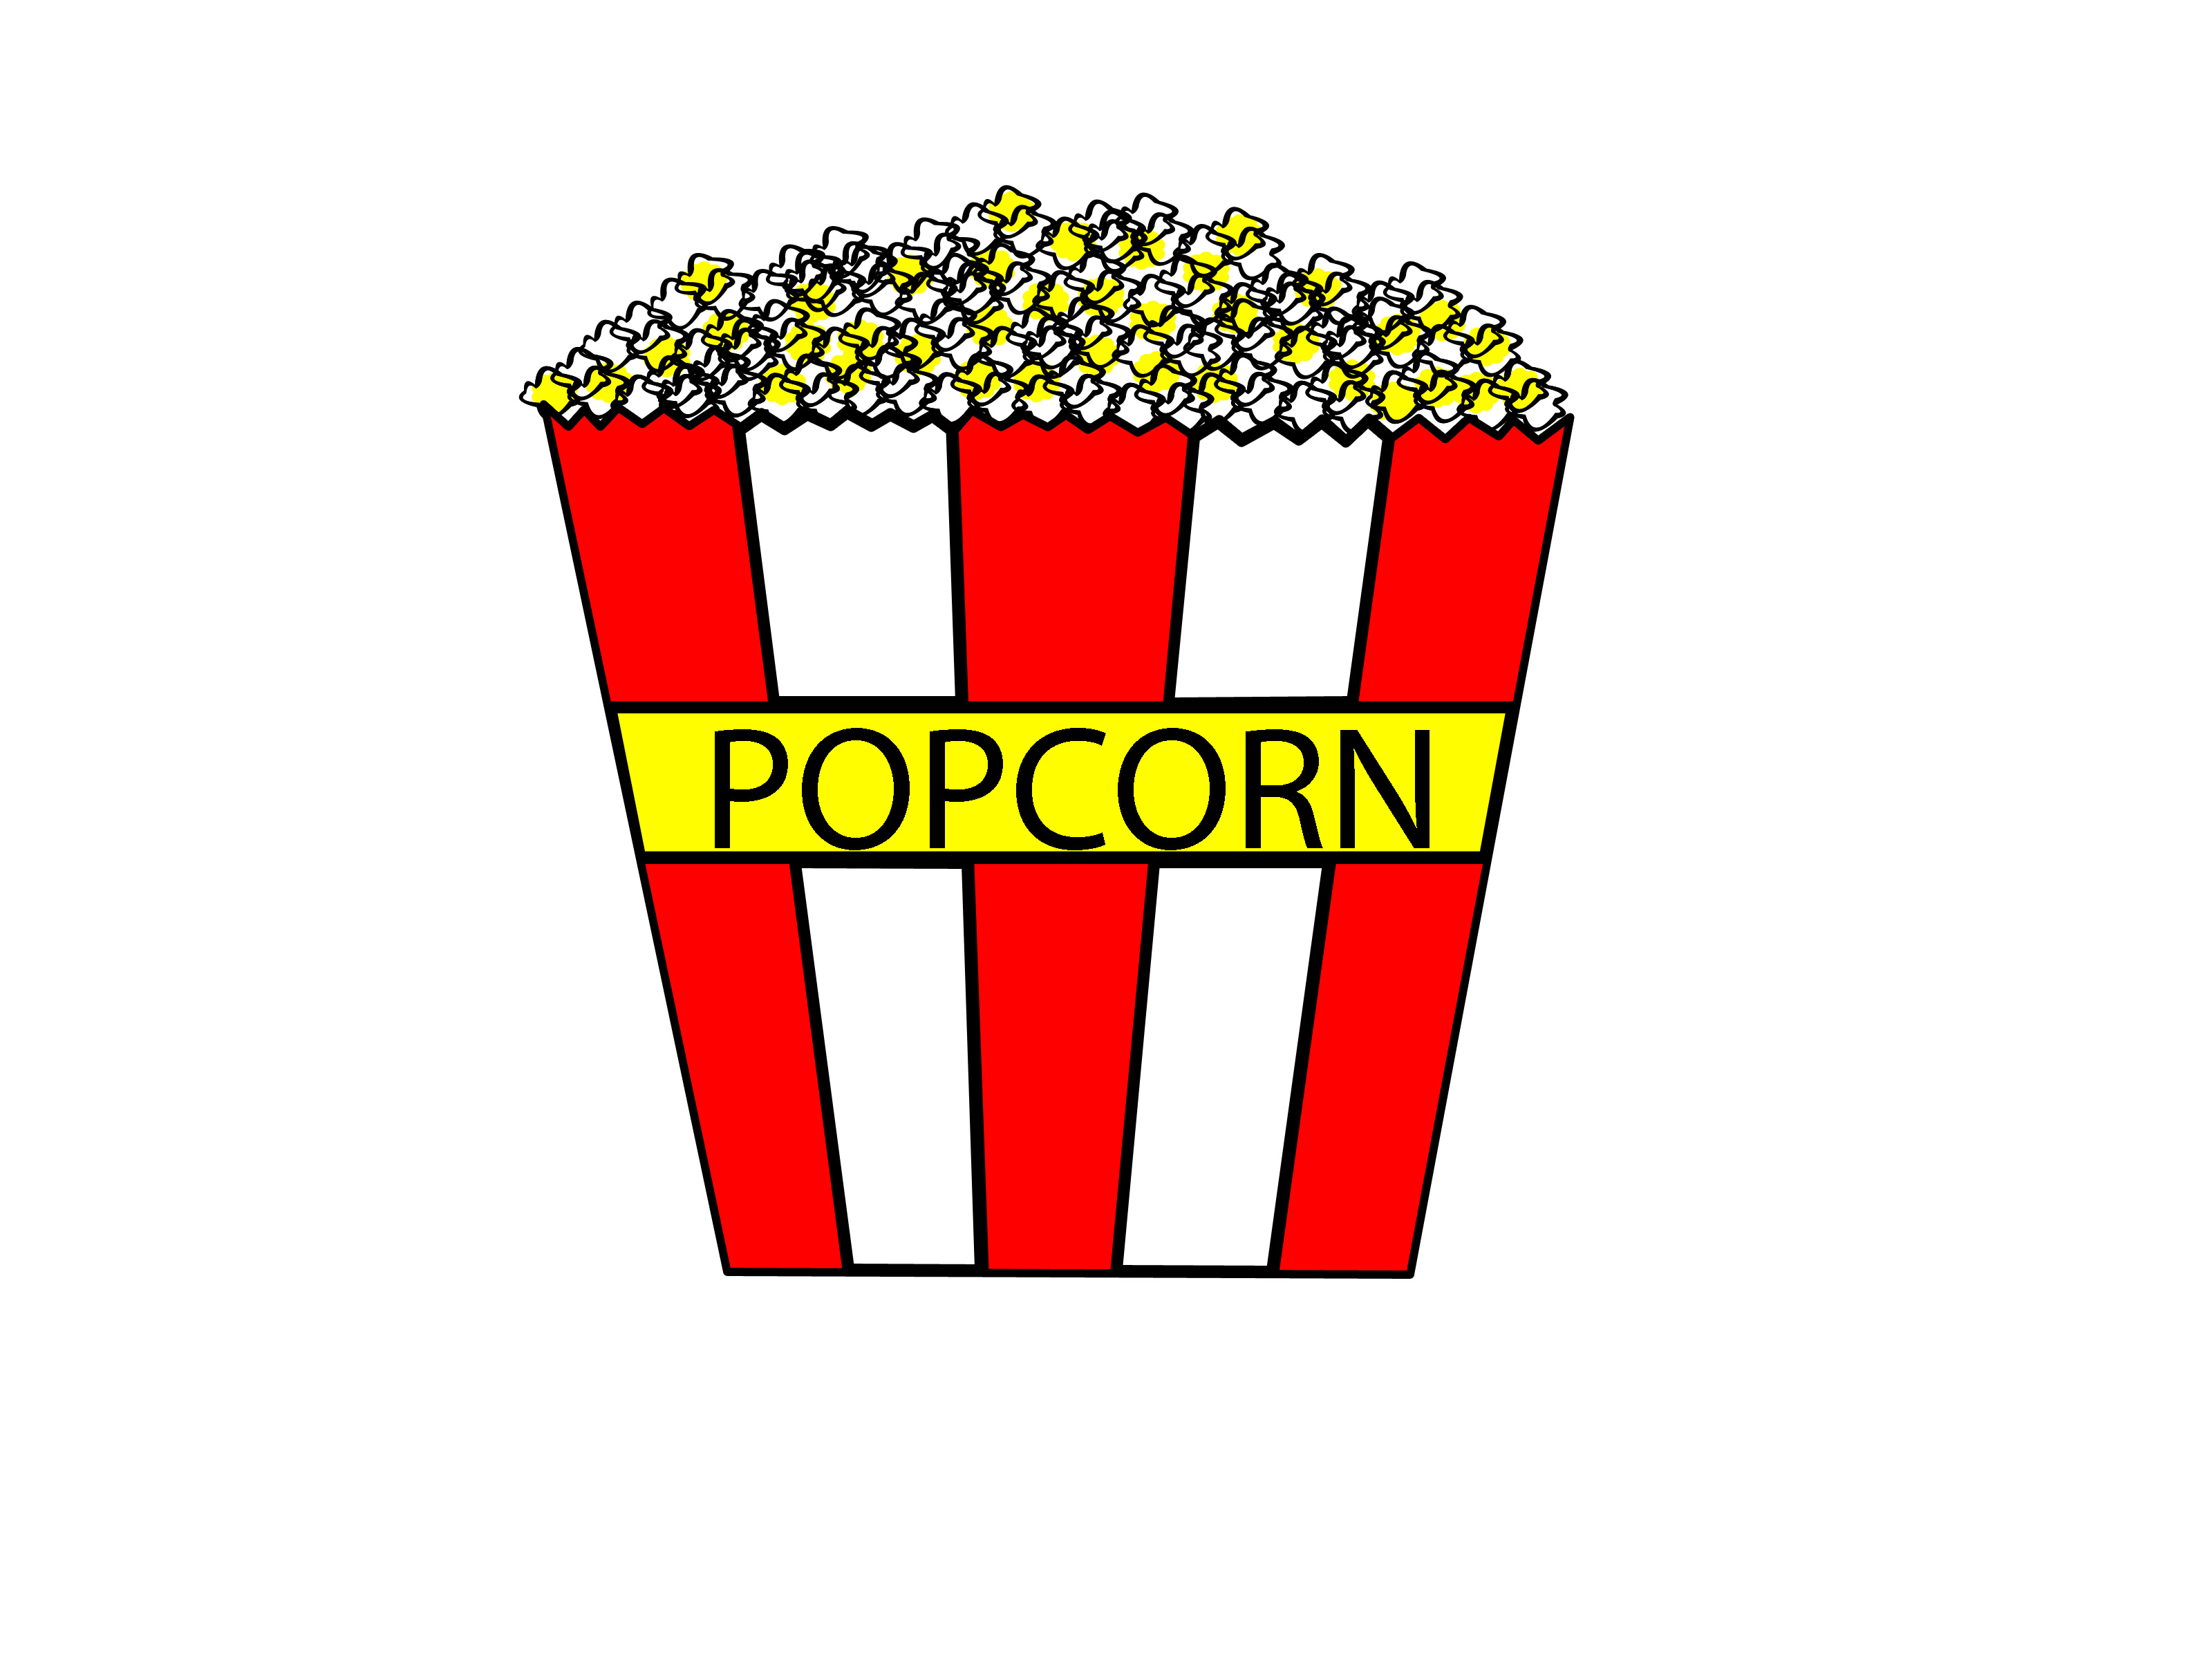 3200x2400 How To Draw Cartoon Popcorn 9 Steps (With Pictures)